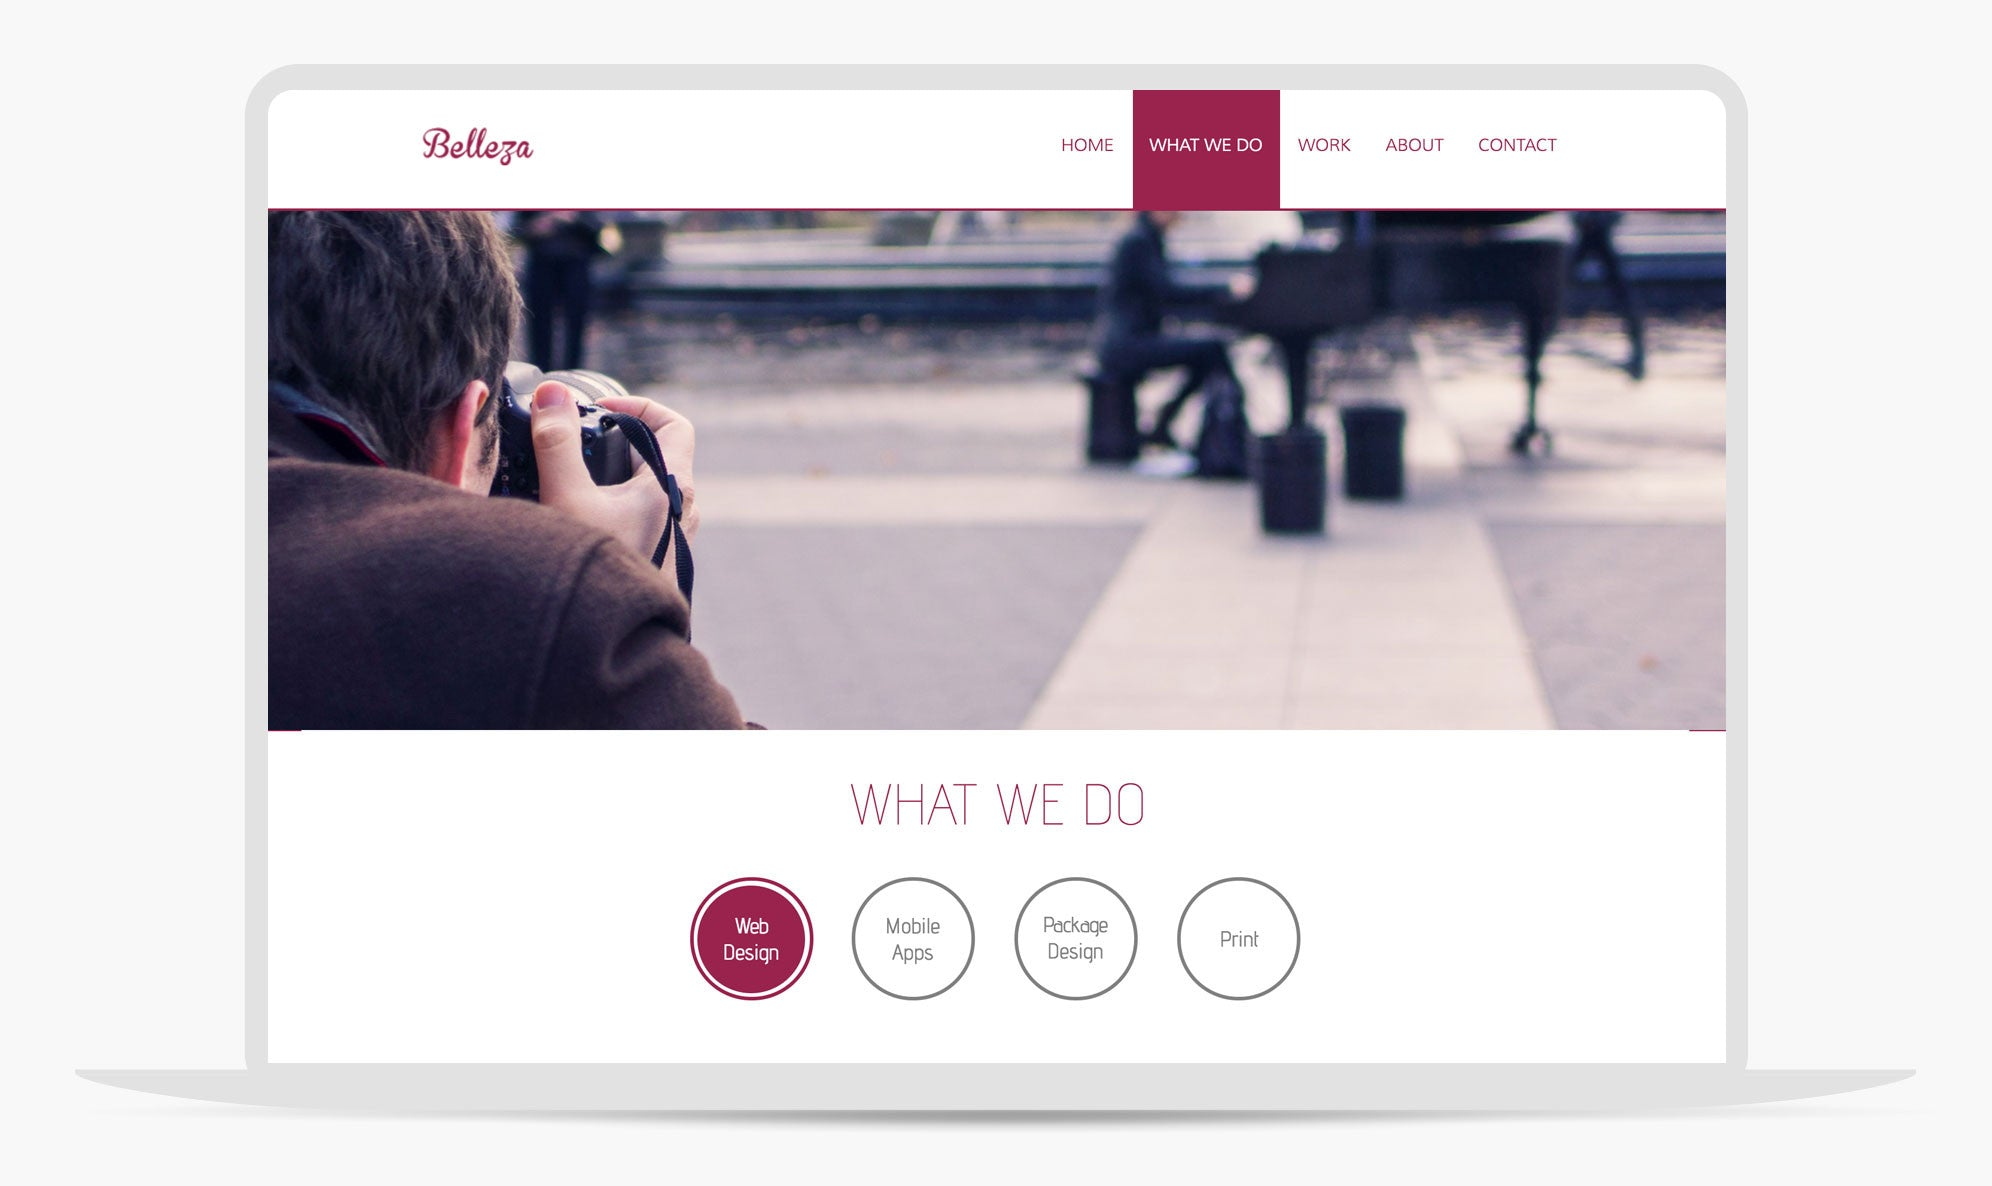 Belleza Adobe Muse Theme By Musethemes